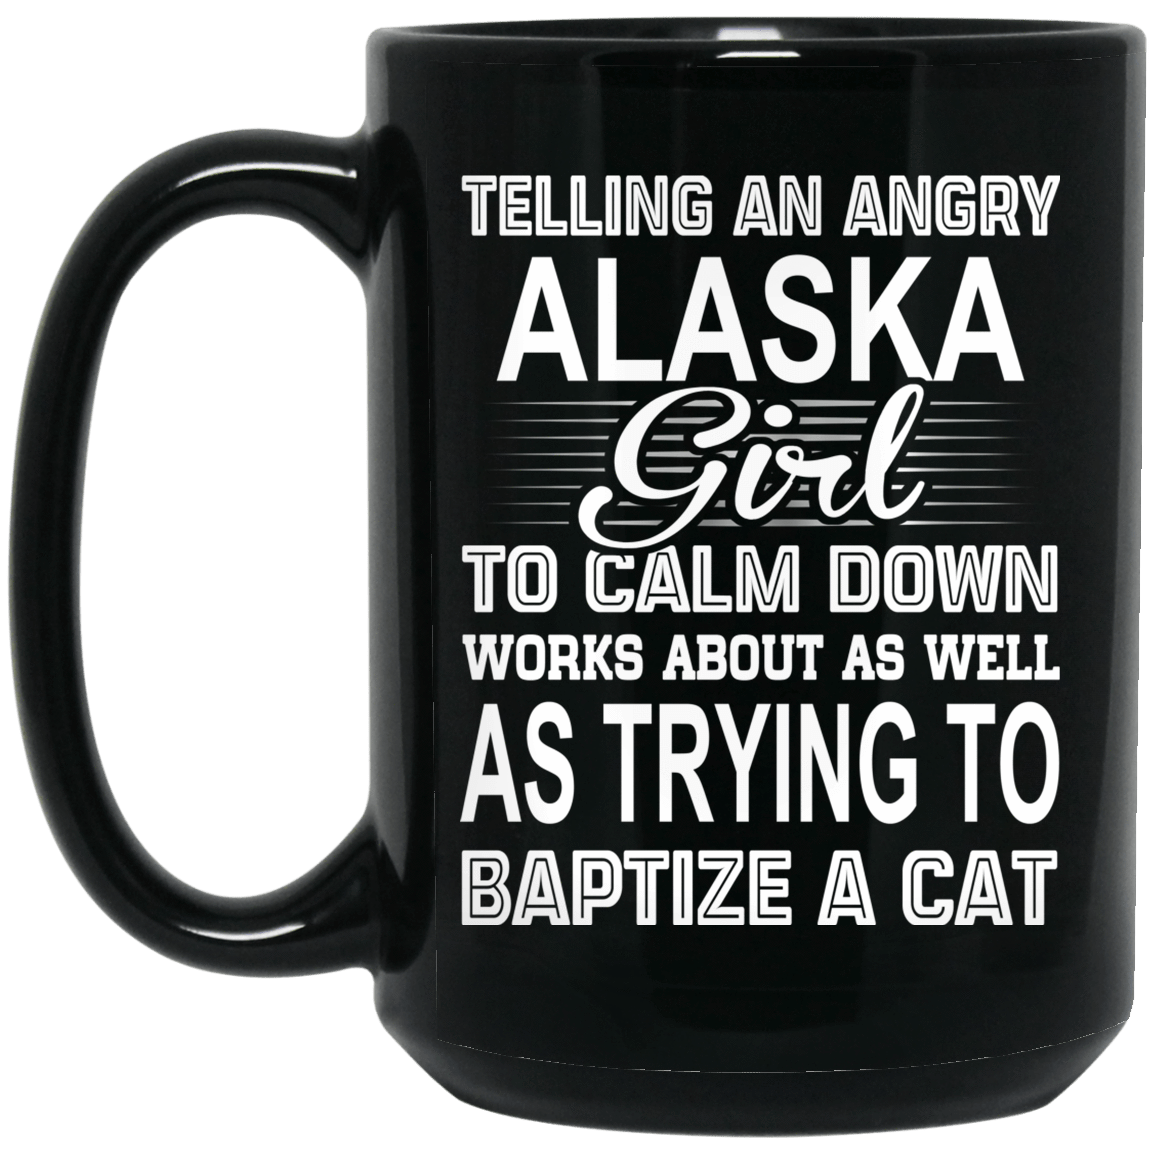 Telling An Angry Alaska Girl To Calm Down Works About As Well As Trying To Baptize A Cat Mug 1066-10182-76151929-49311 - Tee Ript